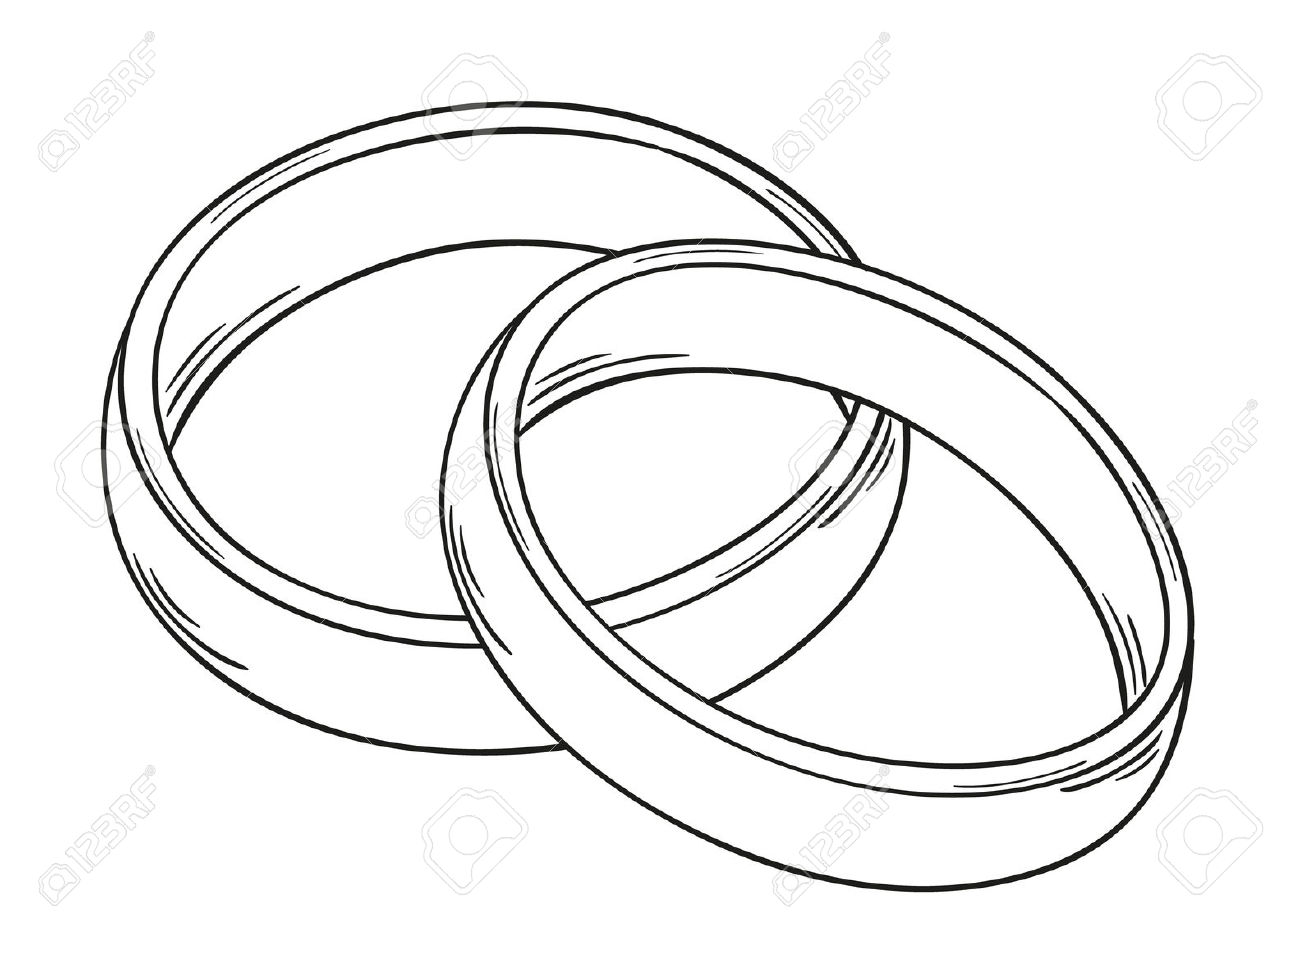 Wedding Line Drawing At Getdrawings Free For Personal Use